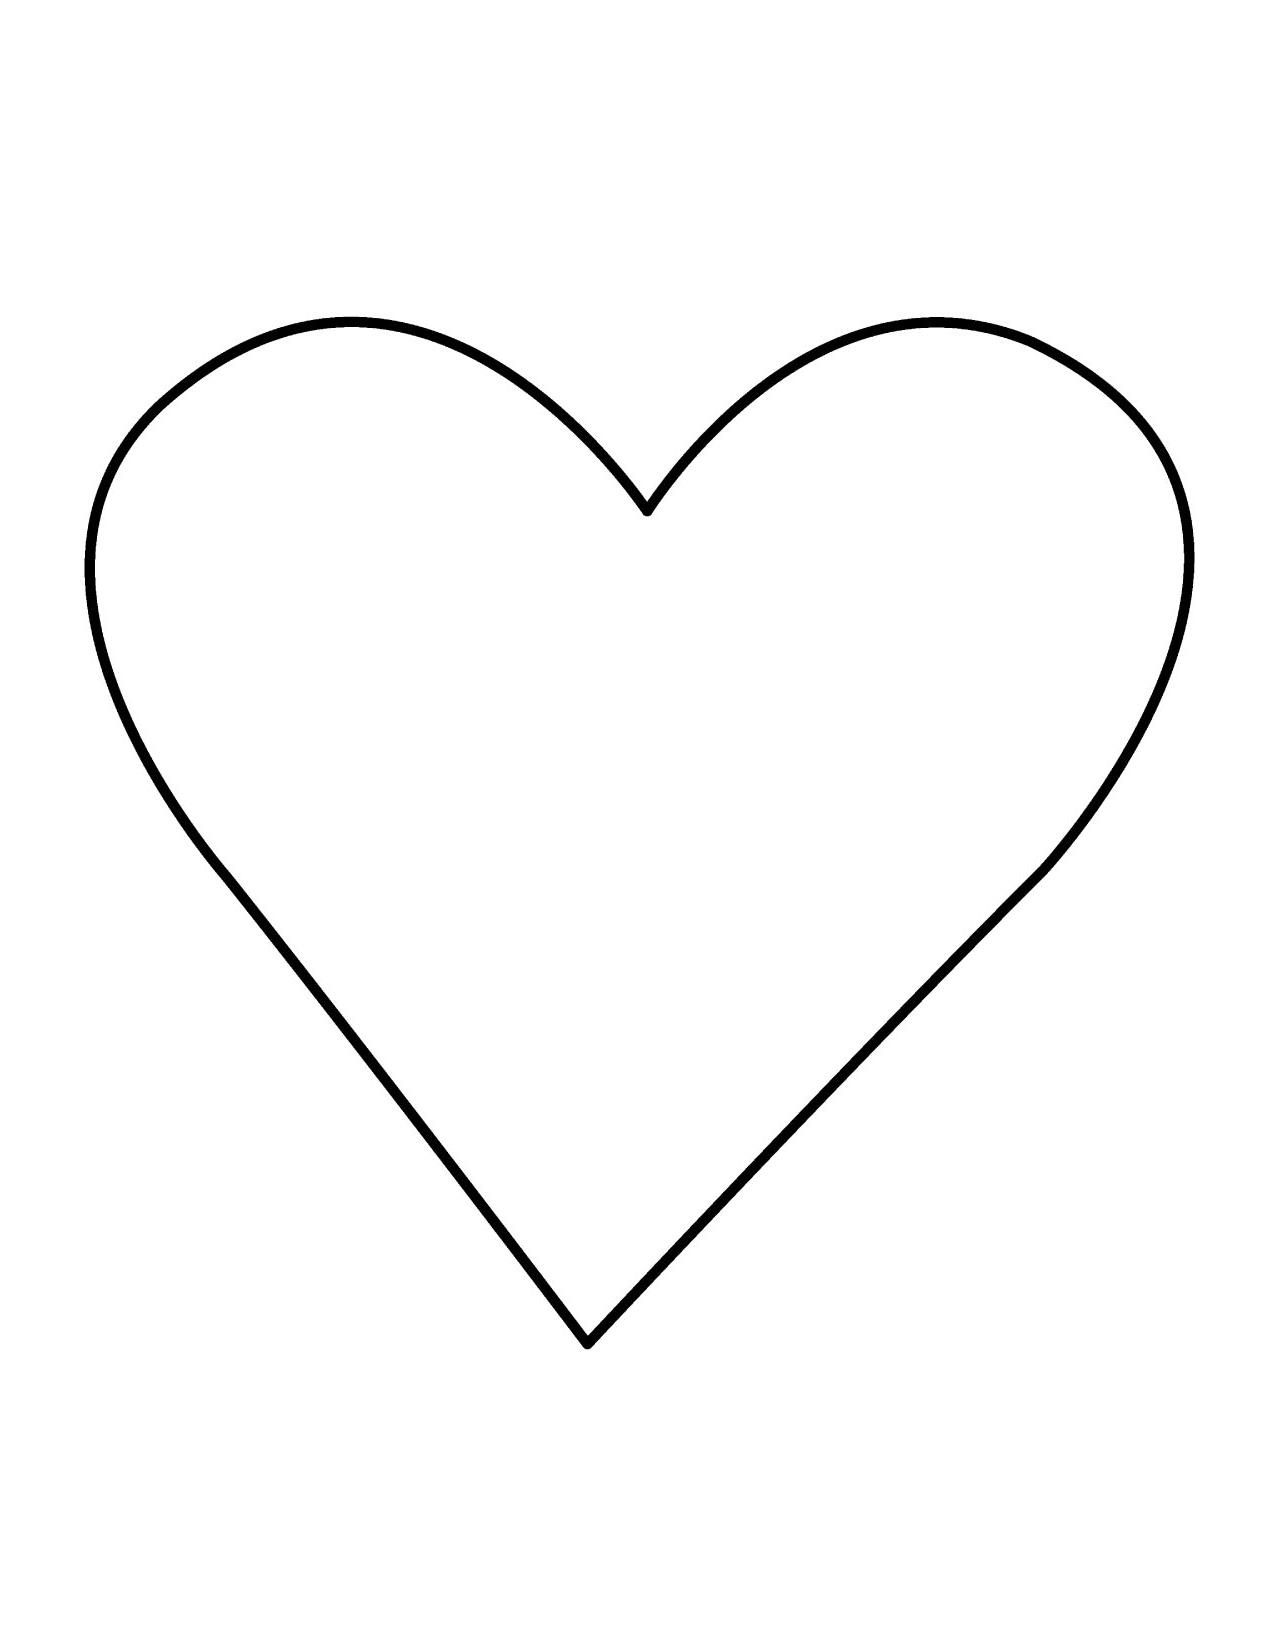 1275x1650 Hd Clip Art Heart Outline Free Clipart Images Pictures